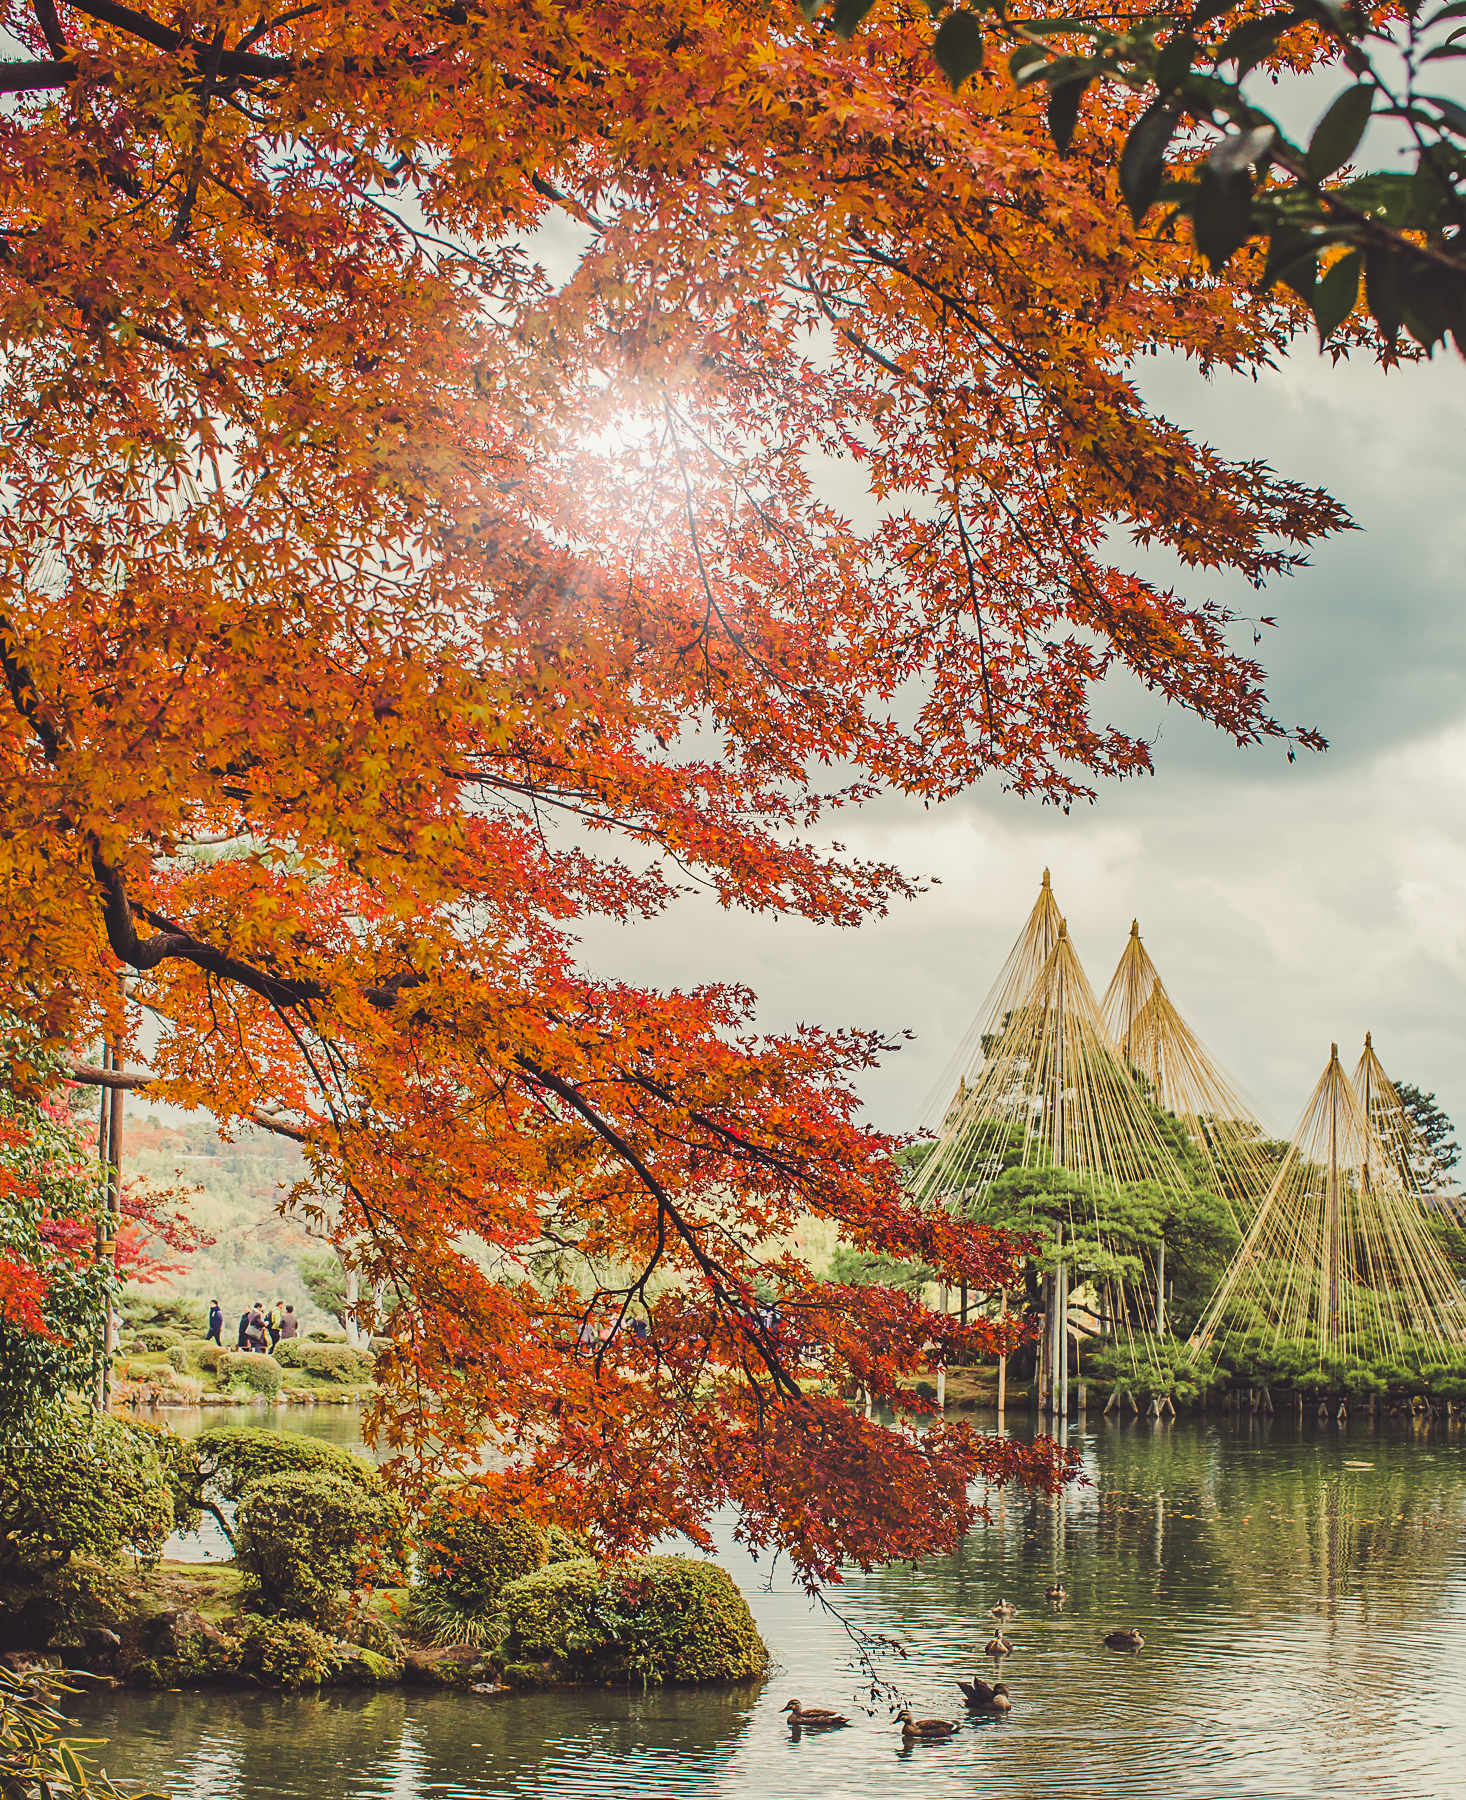 Japan Autumn Tour OCTober - Come experience Japan in the Autumn! Dates: Oct 27th - Nov 4th (10 days) Mix of Mountain and Seascape Photography.USD $3999 (twin share)